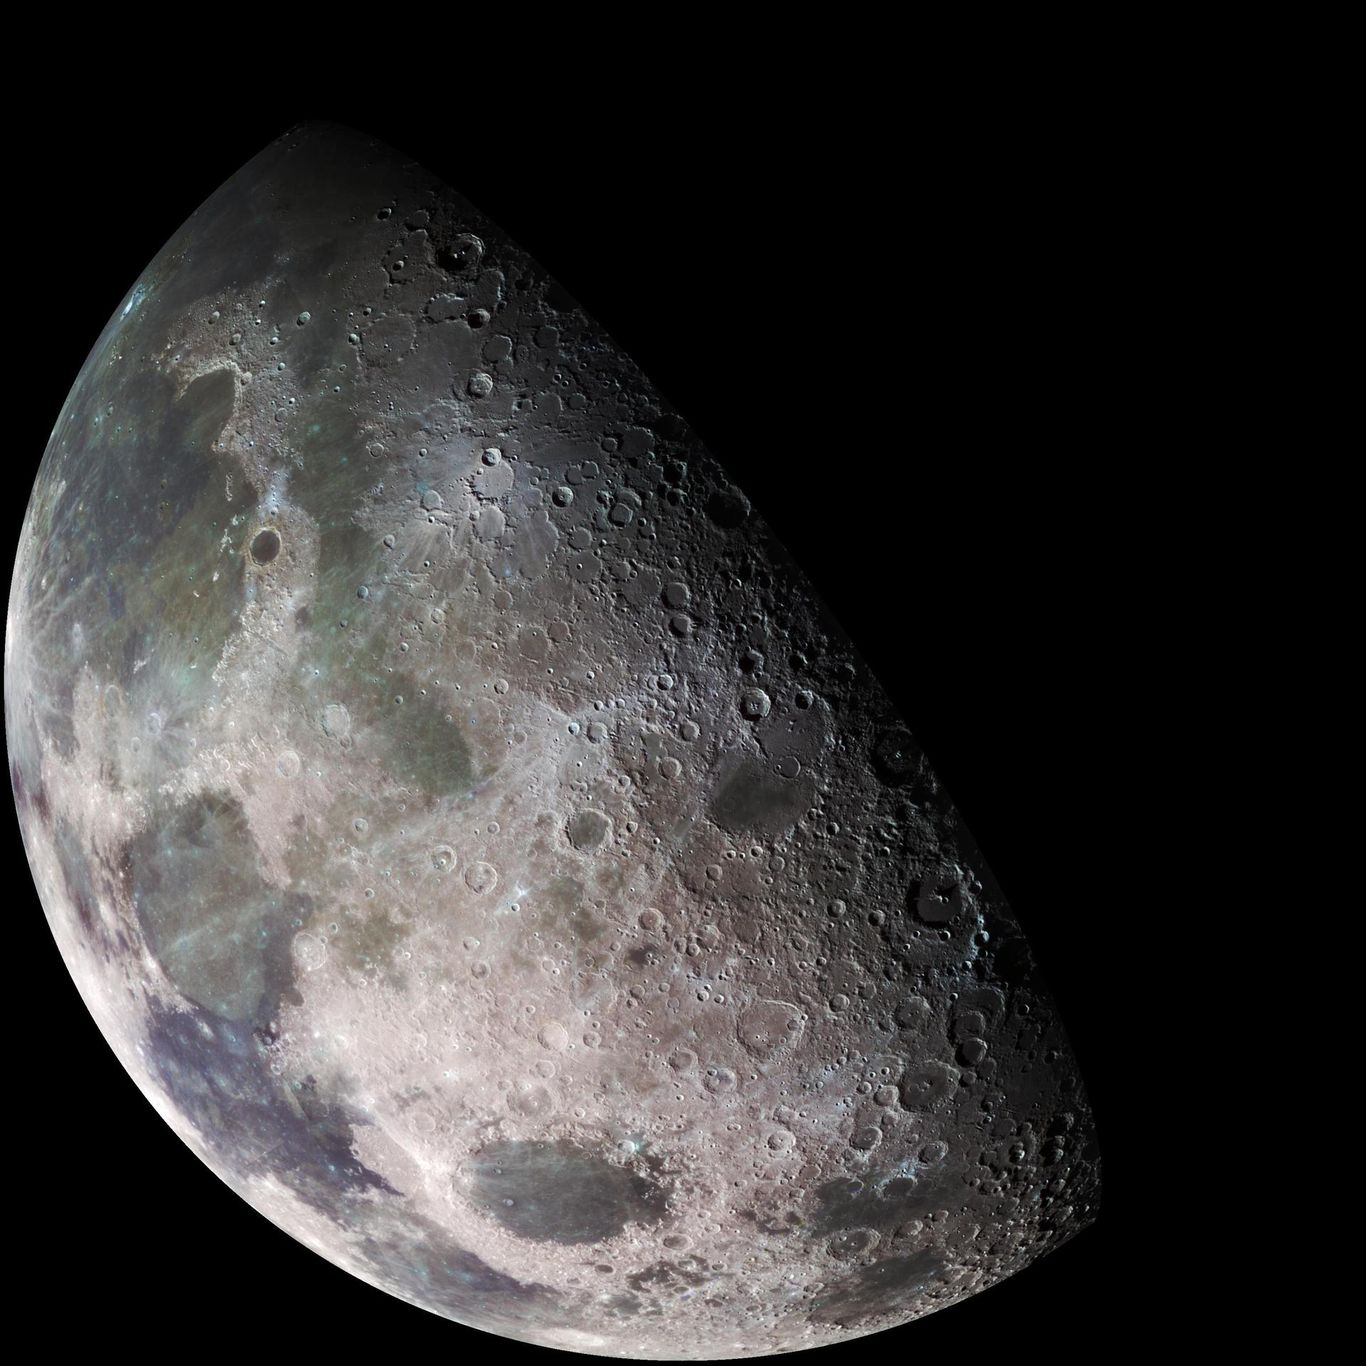 NASA confirms water exists on sunny parts of the Moon thumbnail